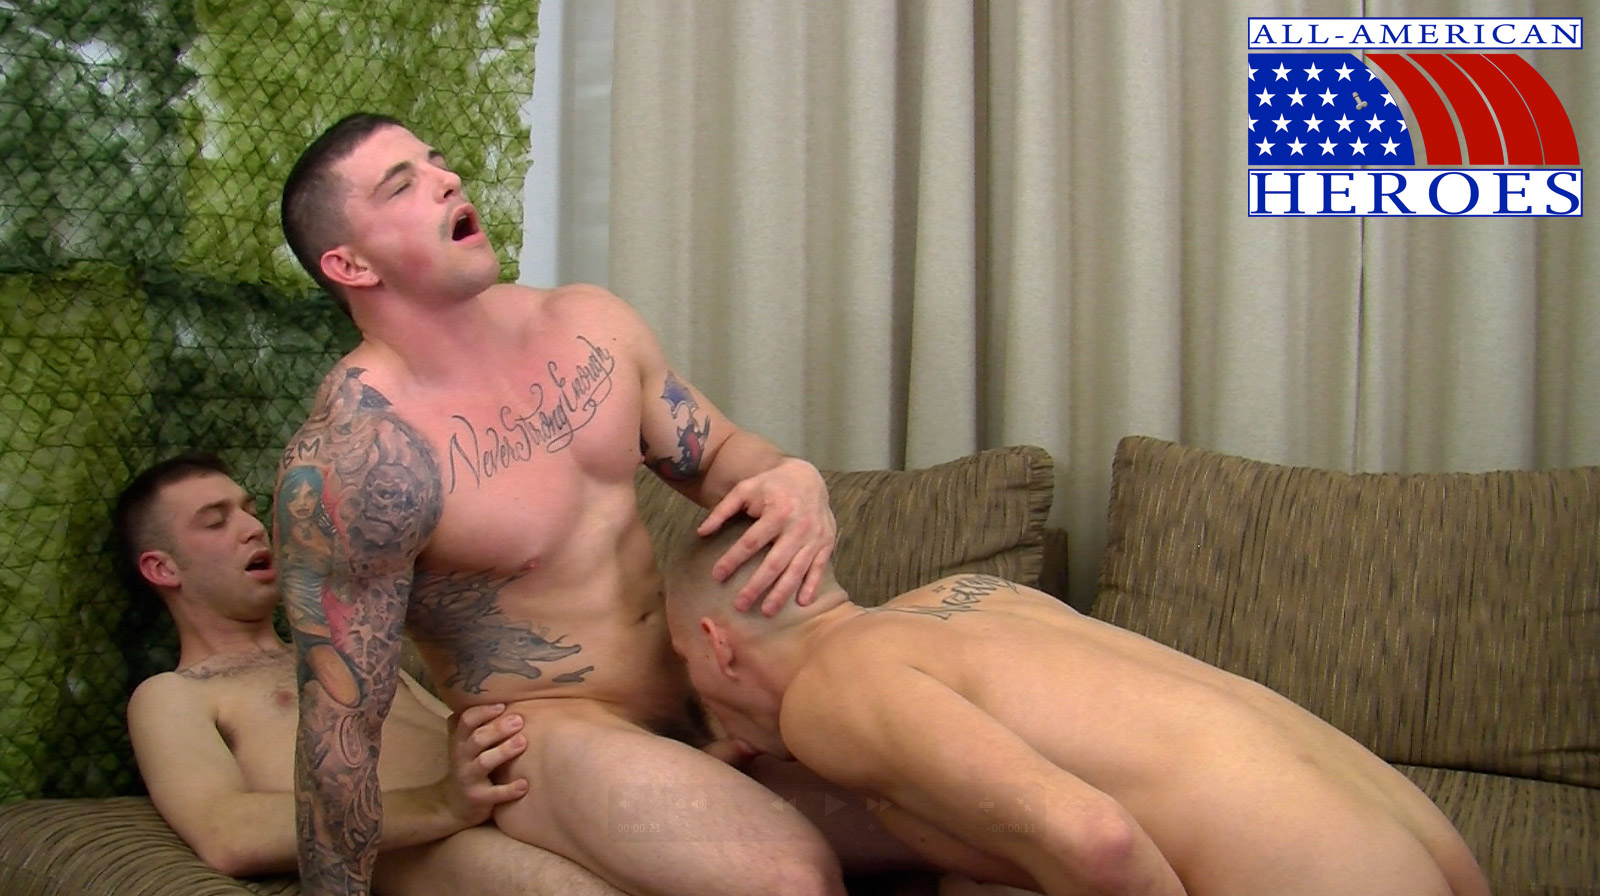 All-American-Heroes-Sergeant-Slate-Triple-fucking-big-cocks-Army-guys-Amateur-Gay-Porn-10 Two Real Army Privates Fuck Their Muscle Sergeant and Cum In His Mouth